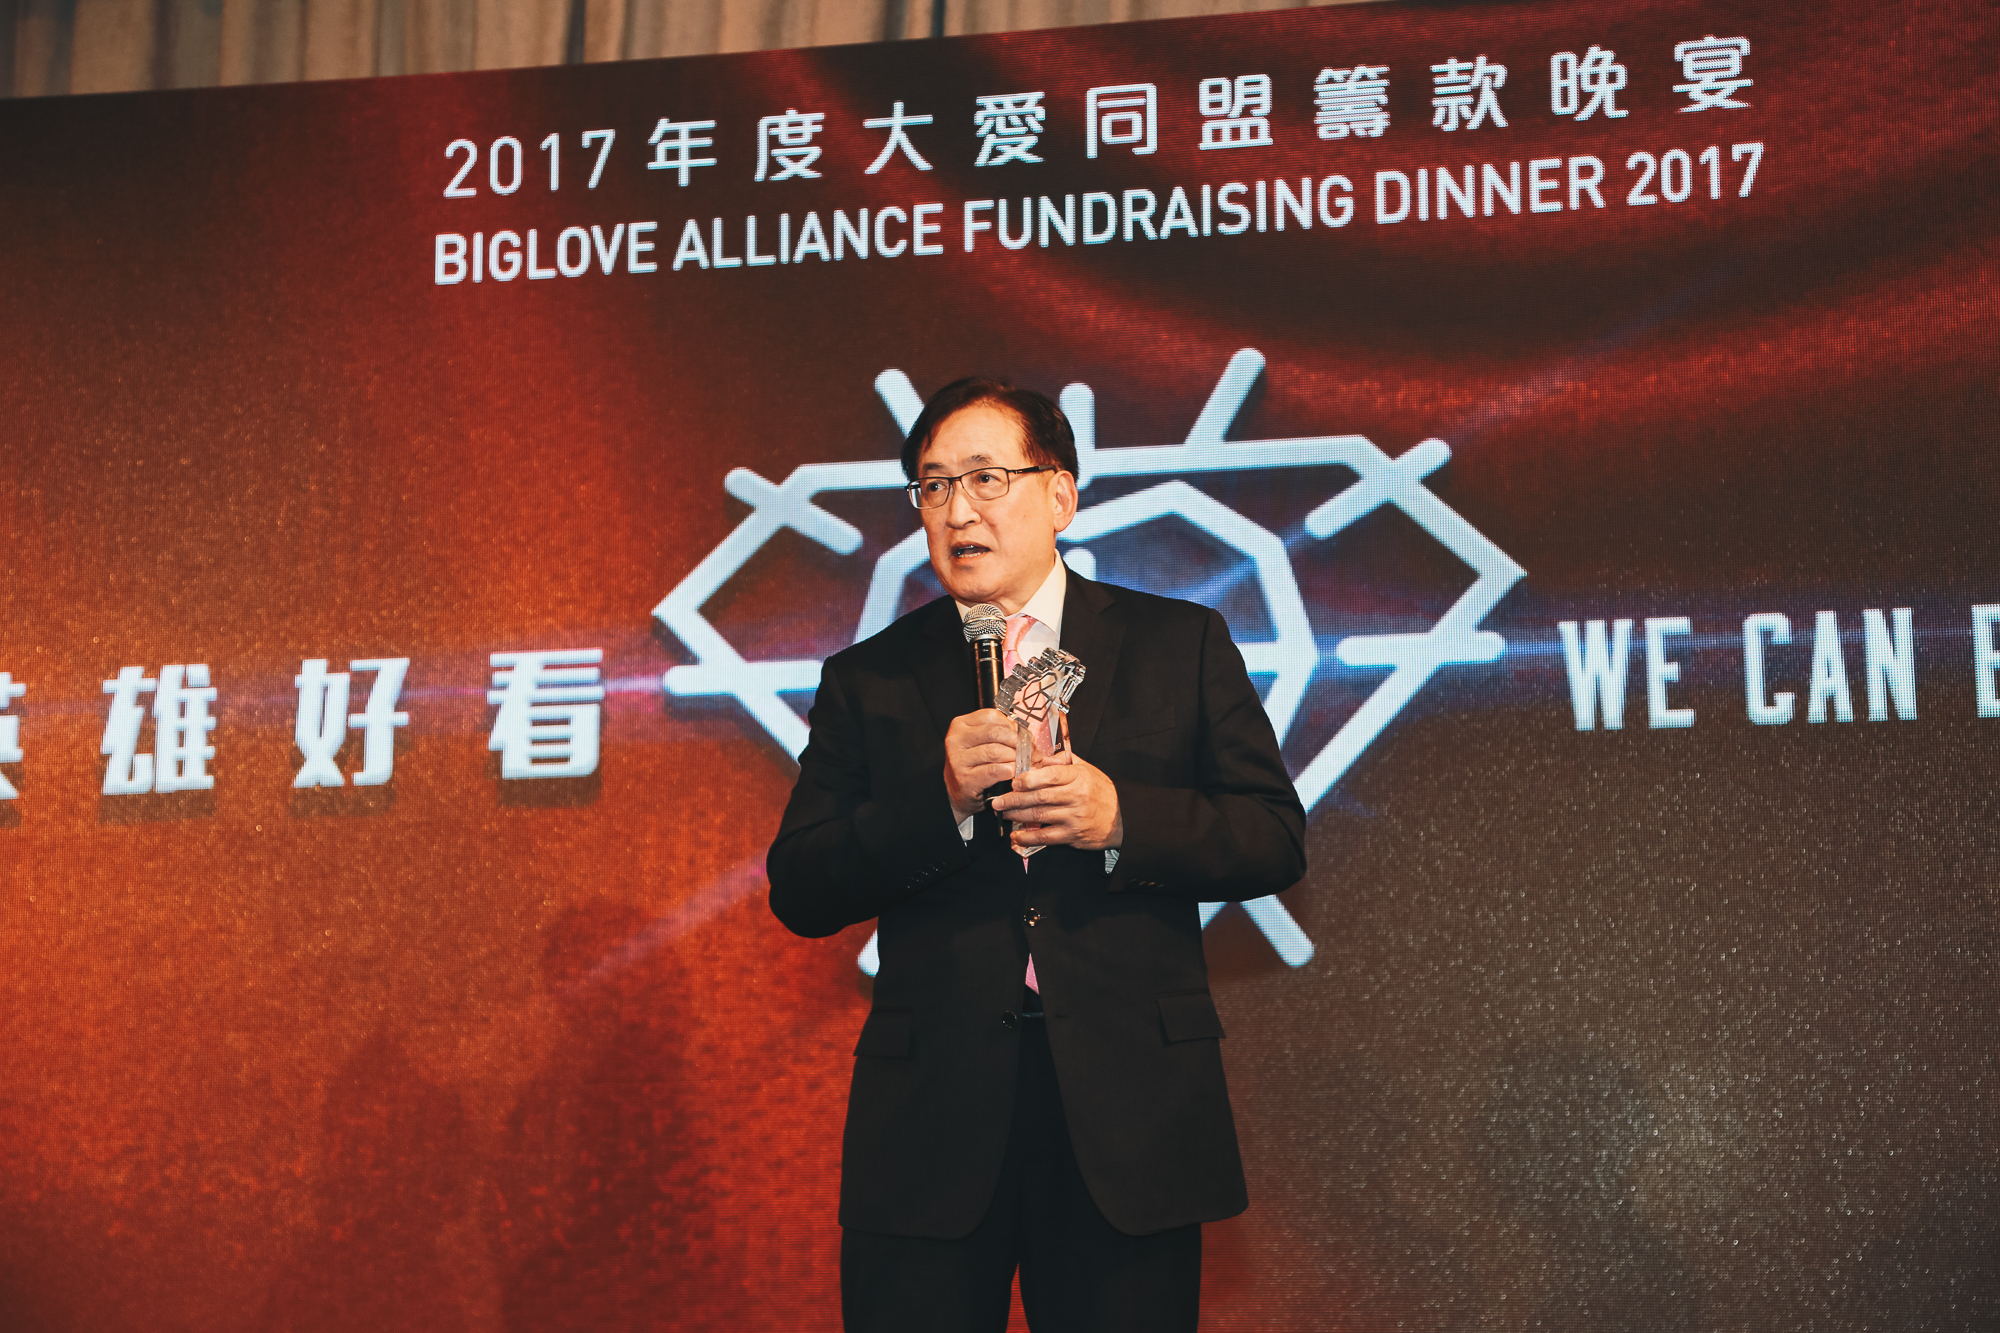 Biglove Alliance 2017 - Dinner-27.jpg